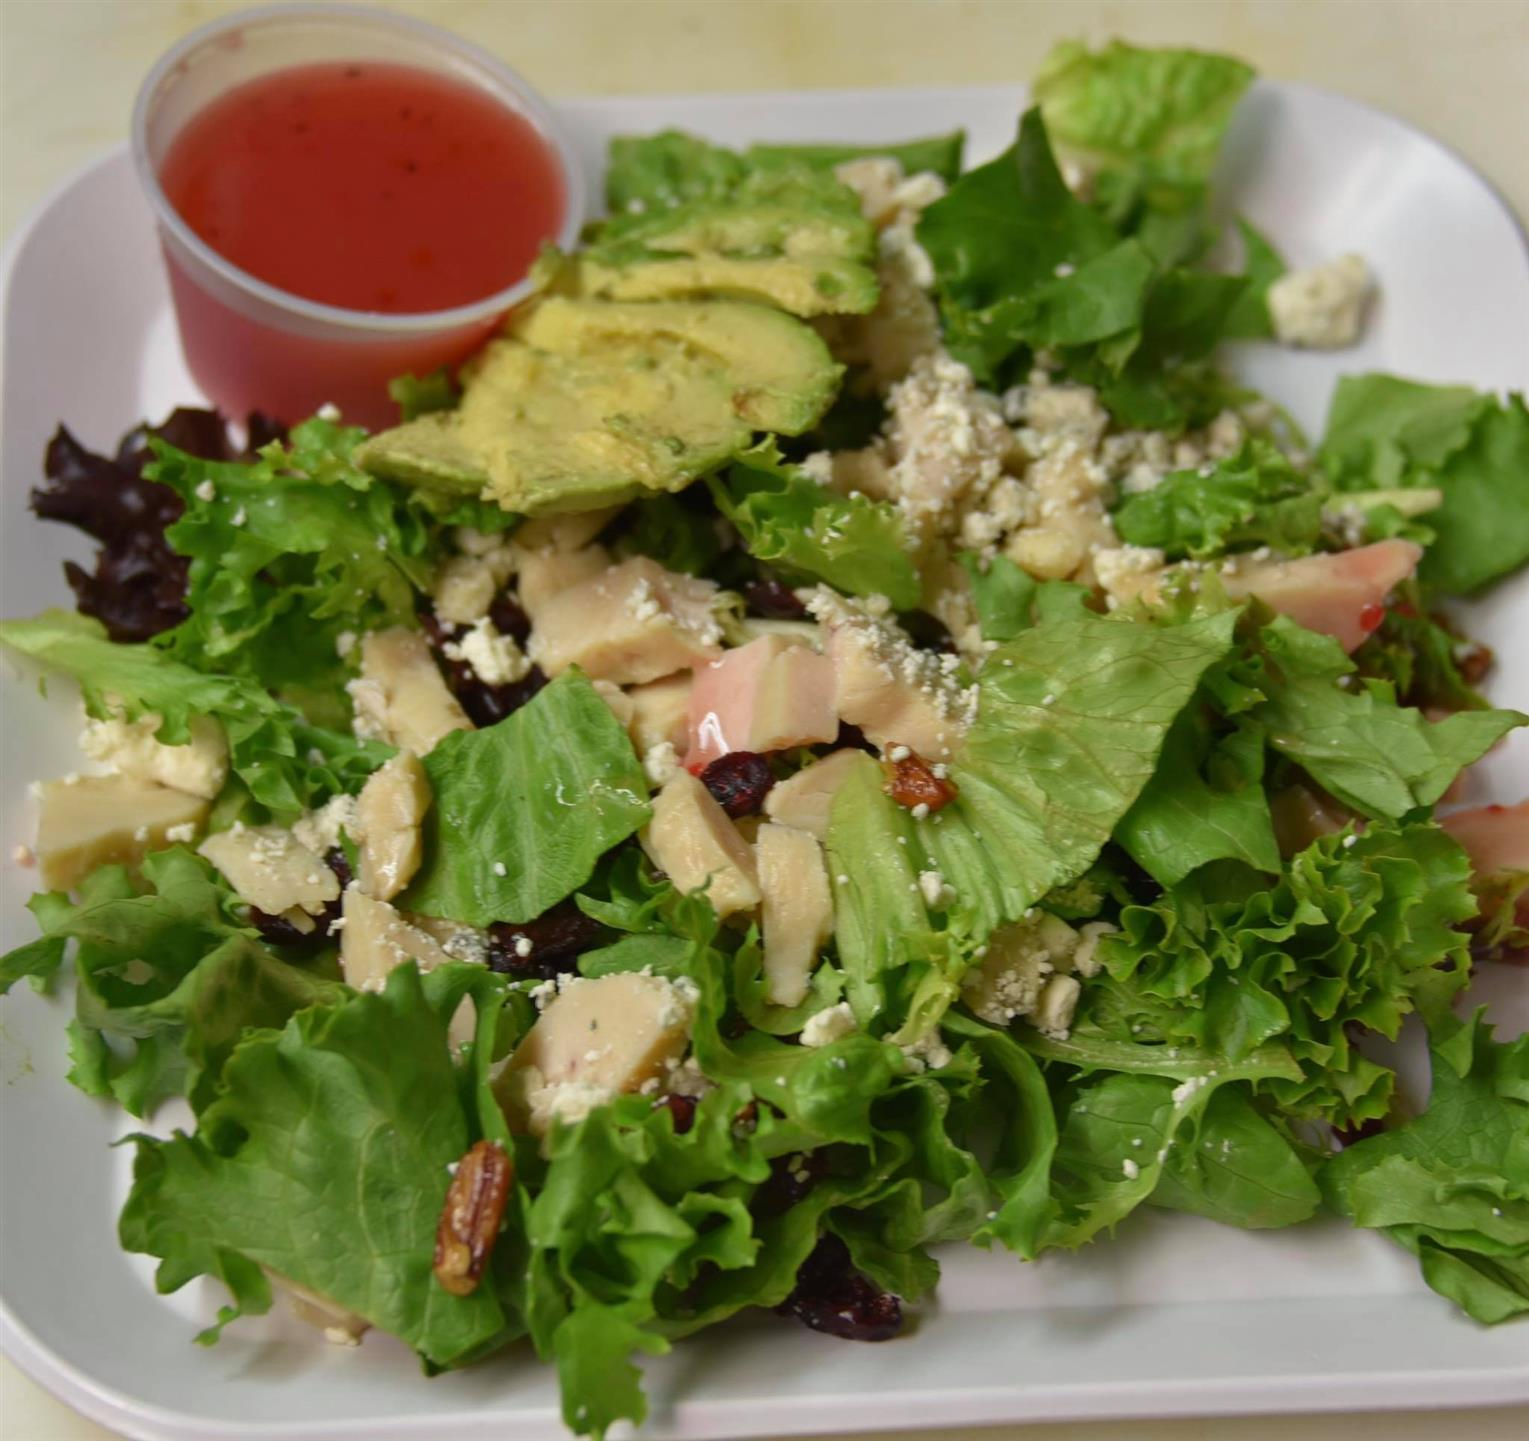 salad with chicken, avocado, and pecans with a raspberry vinagrette dressing on the side